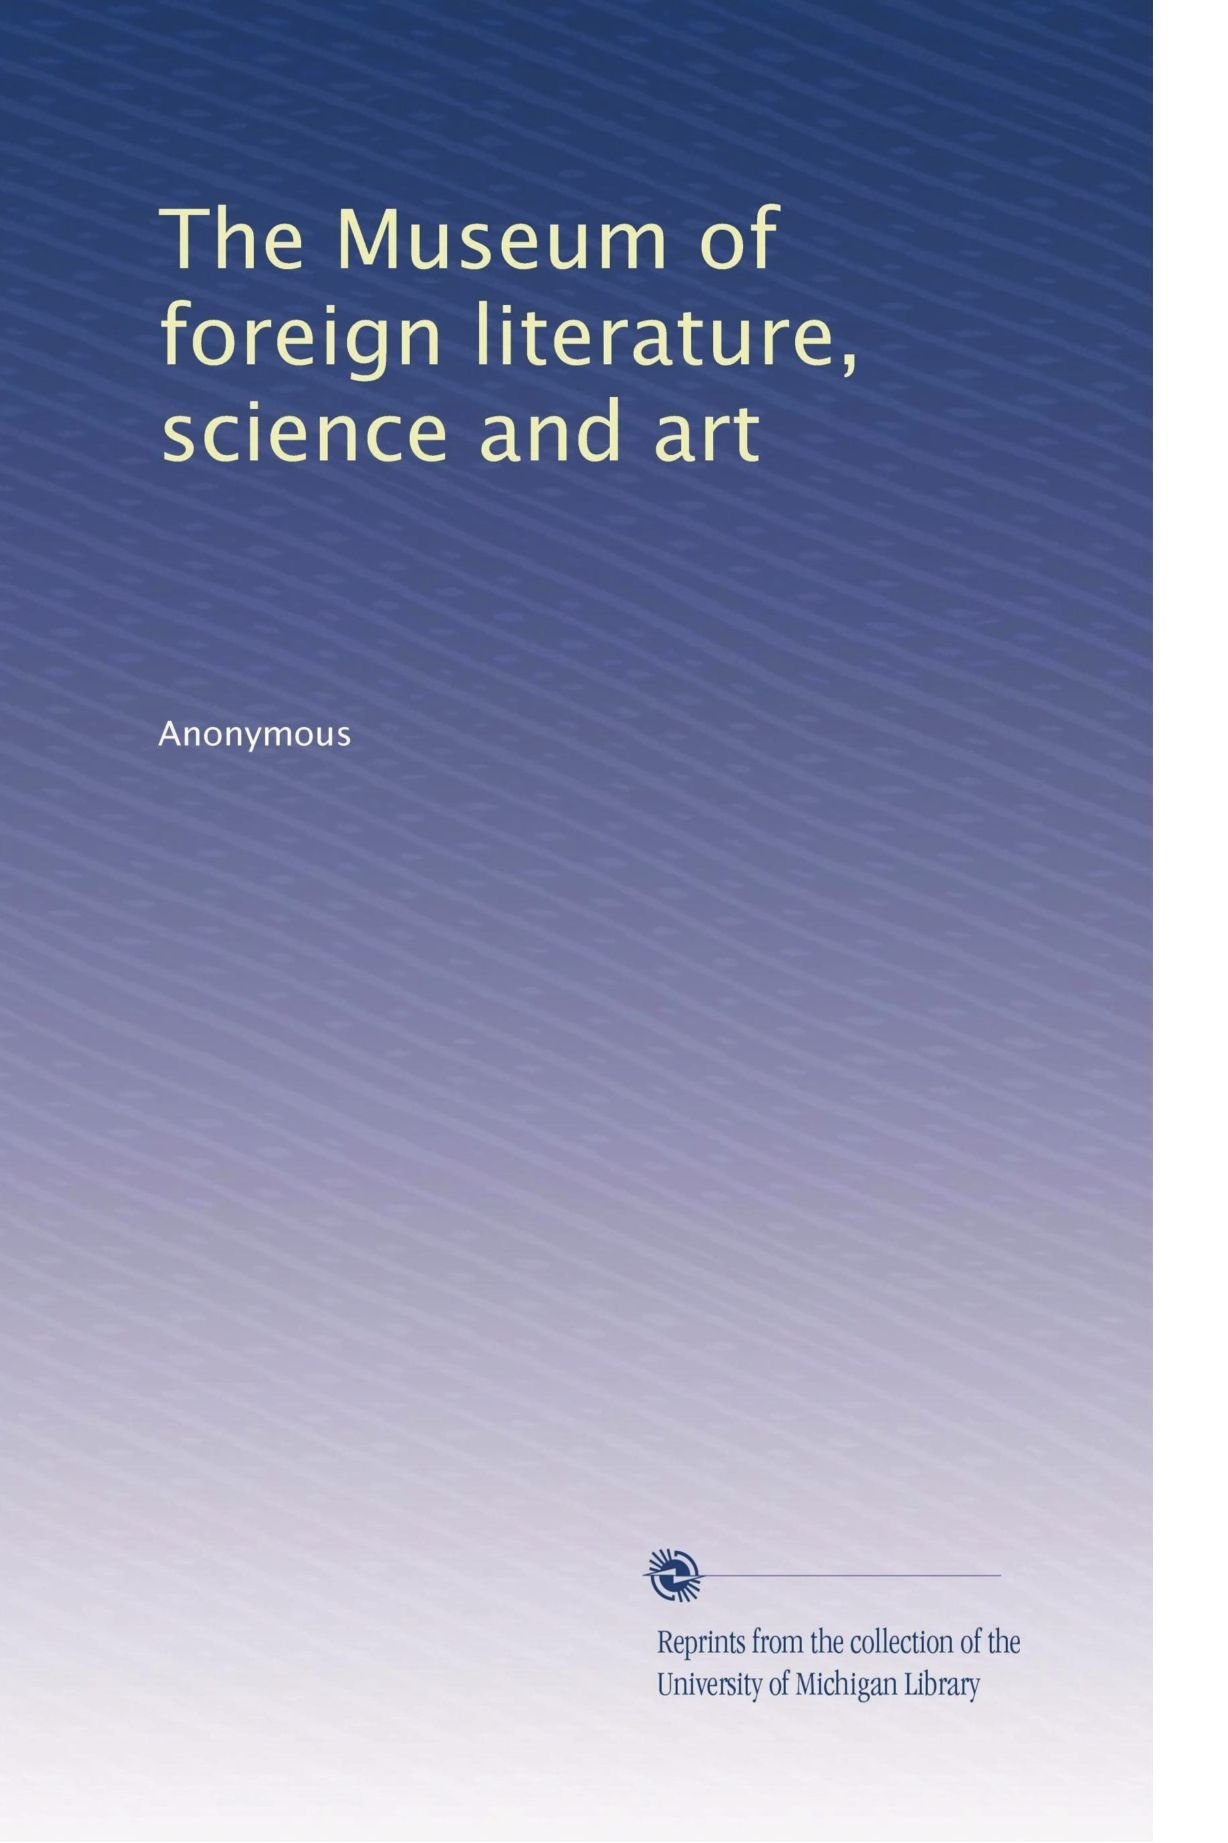 The Museum of foreign literature, science and art (Volume 20) pdf